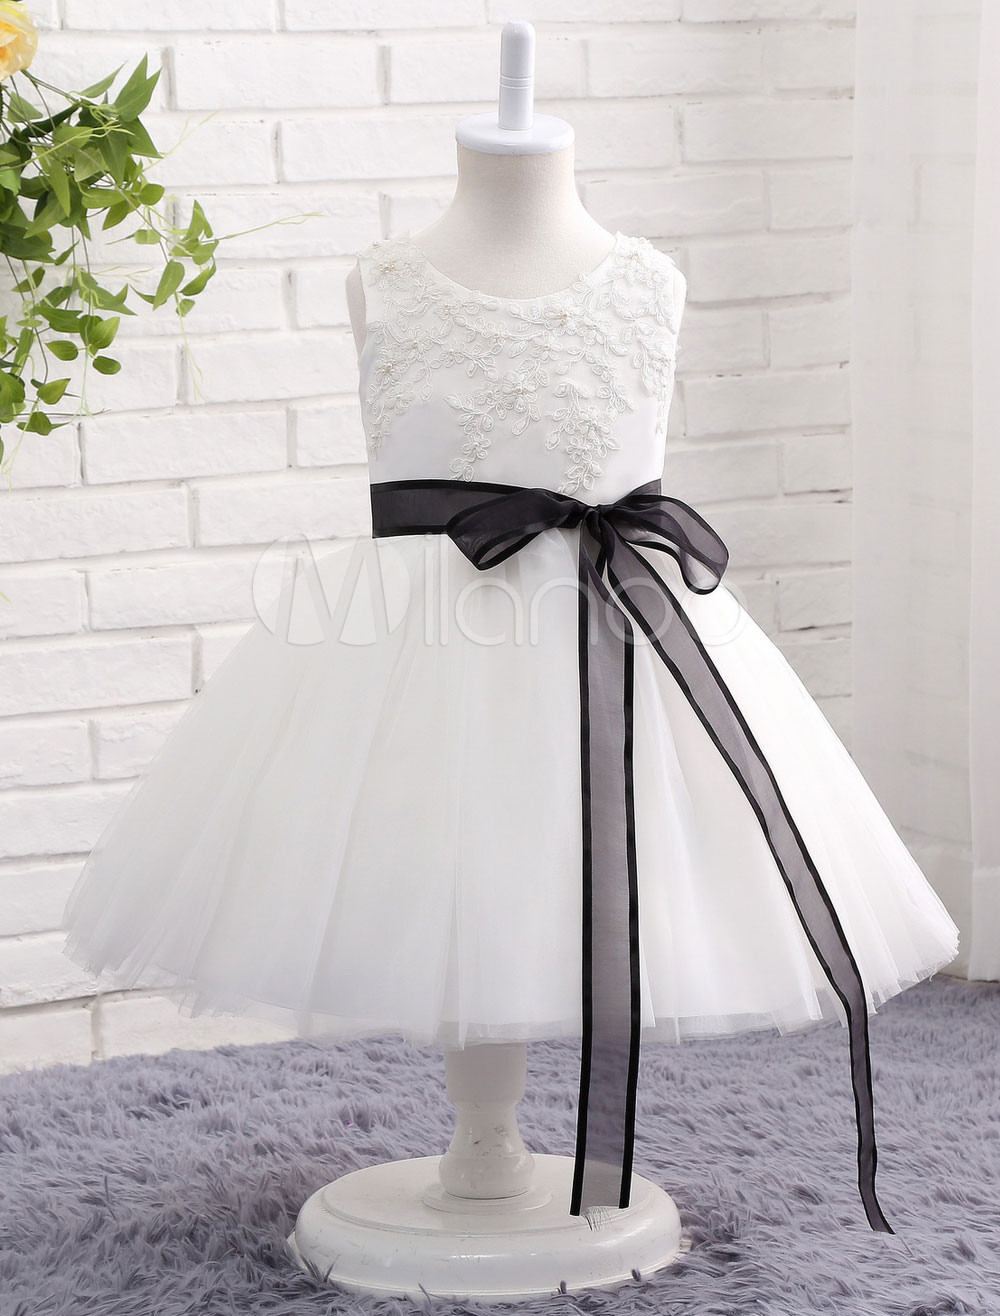 Buy Princess Flower Girl Dress Ivory Tulle Lace Sleeveless Knee Length Toddler's Pageant Dress With Black Sash for $60.29 in Milanoo store